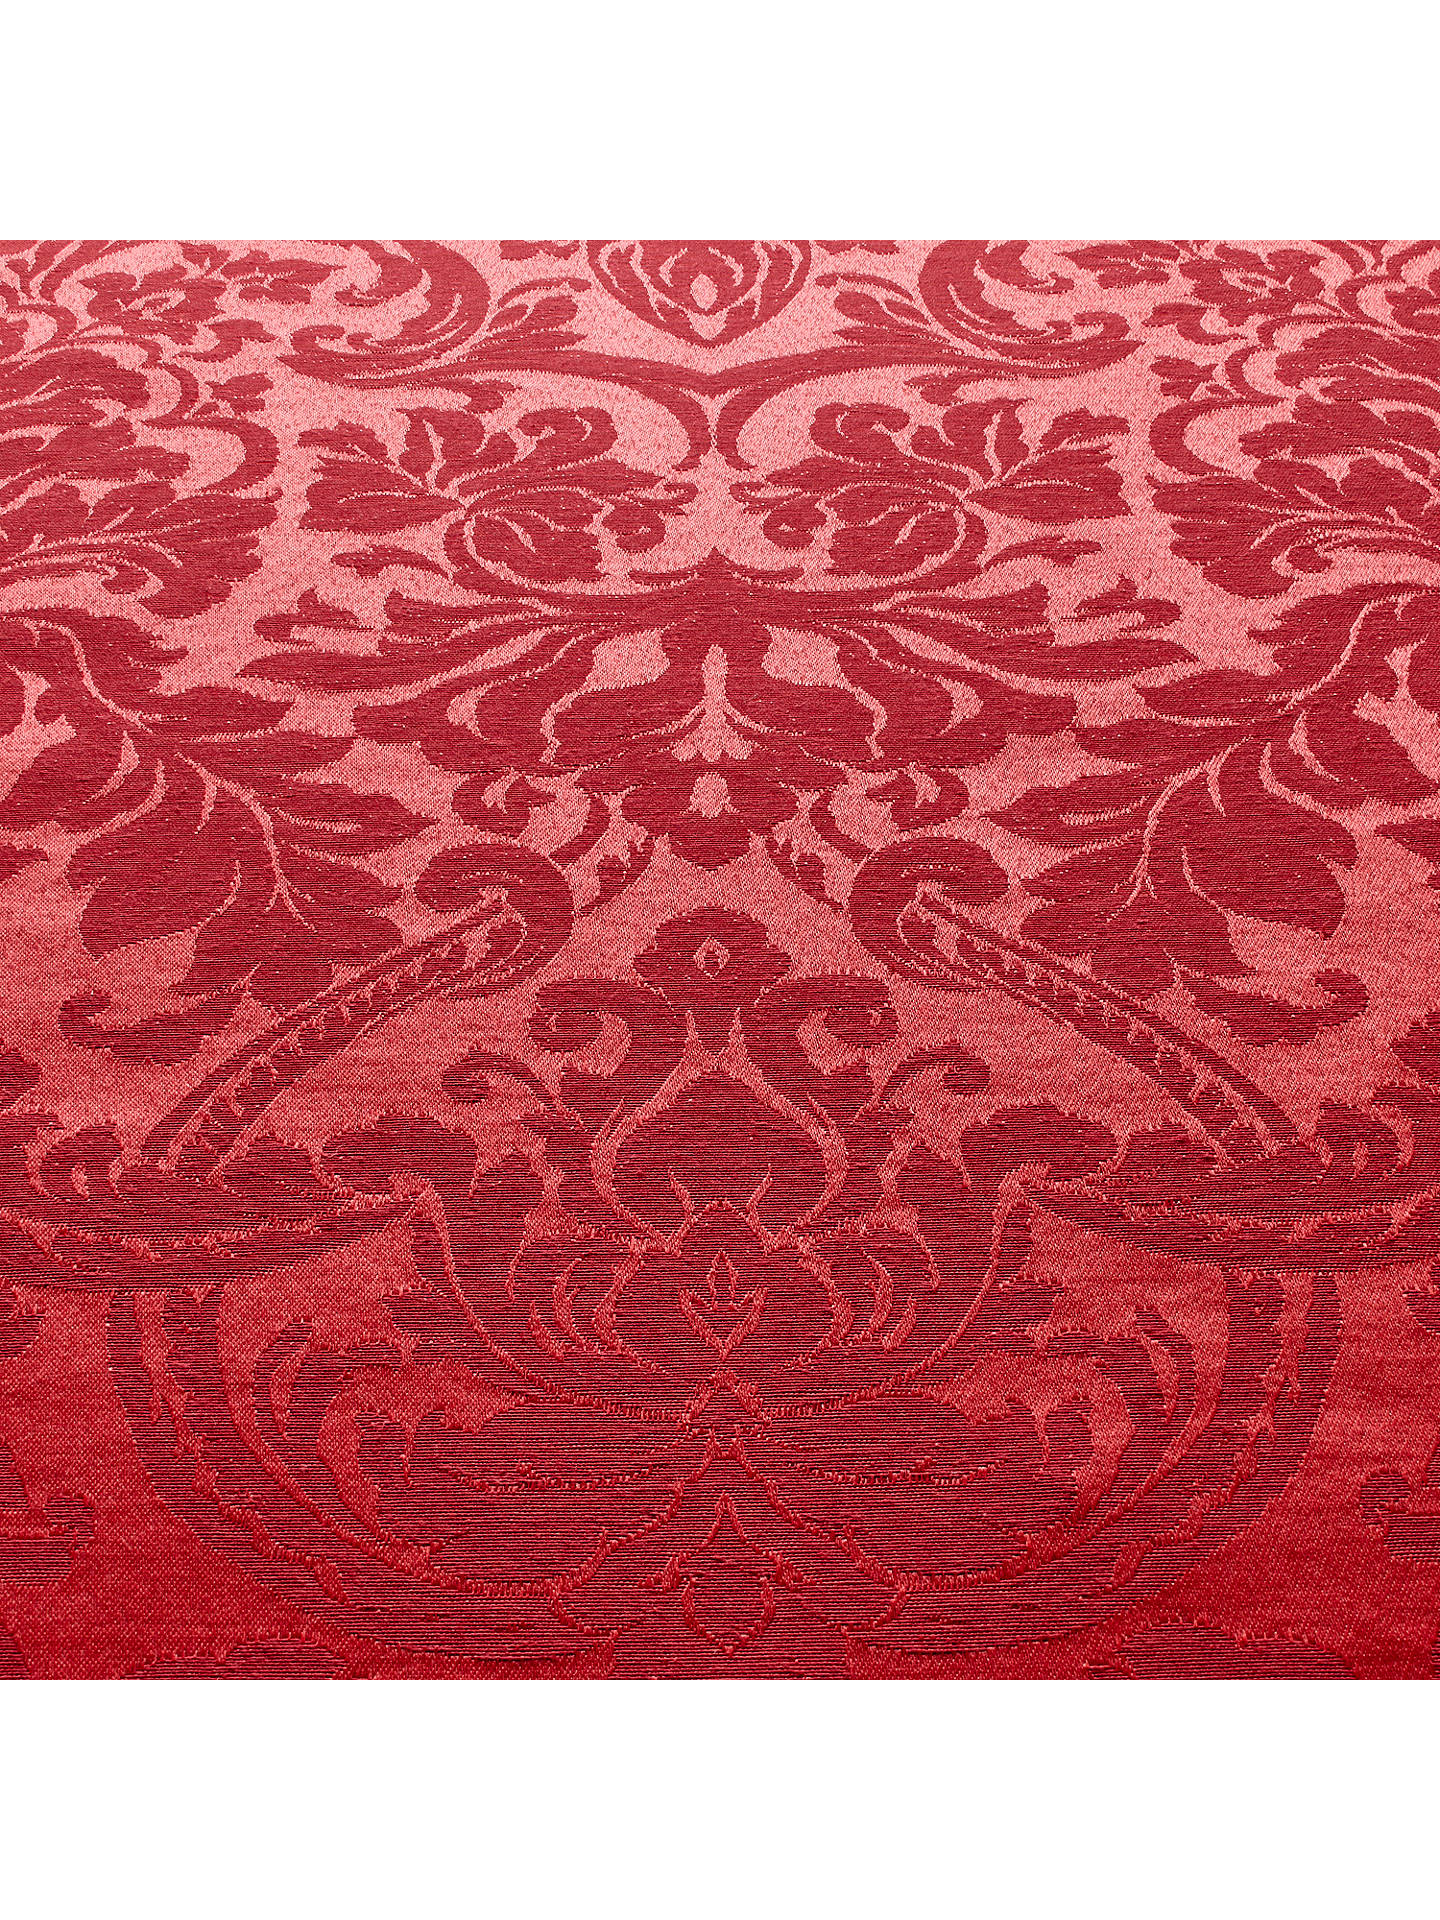 BuyJohn Lewis & Partners Damask Weave Acrylic Coated Tablecloth Fabric, Red Online at johnlewis.com